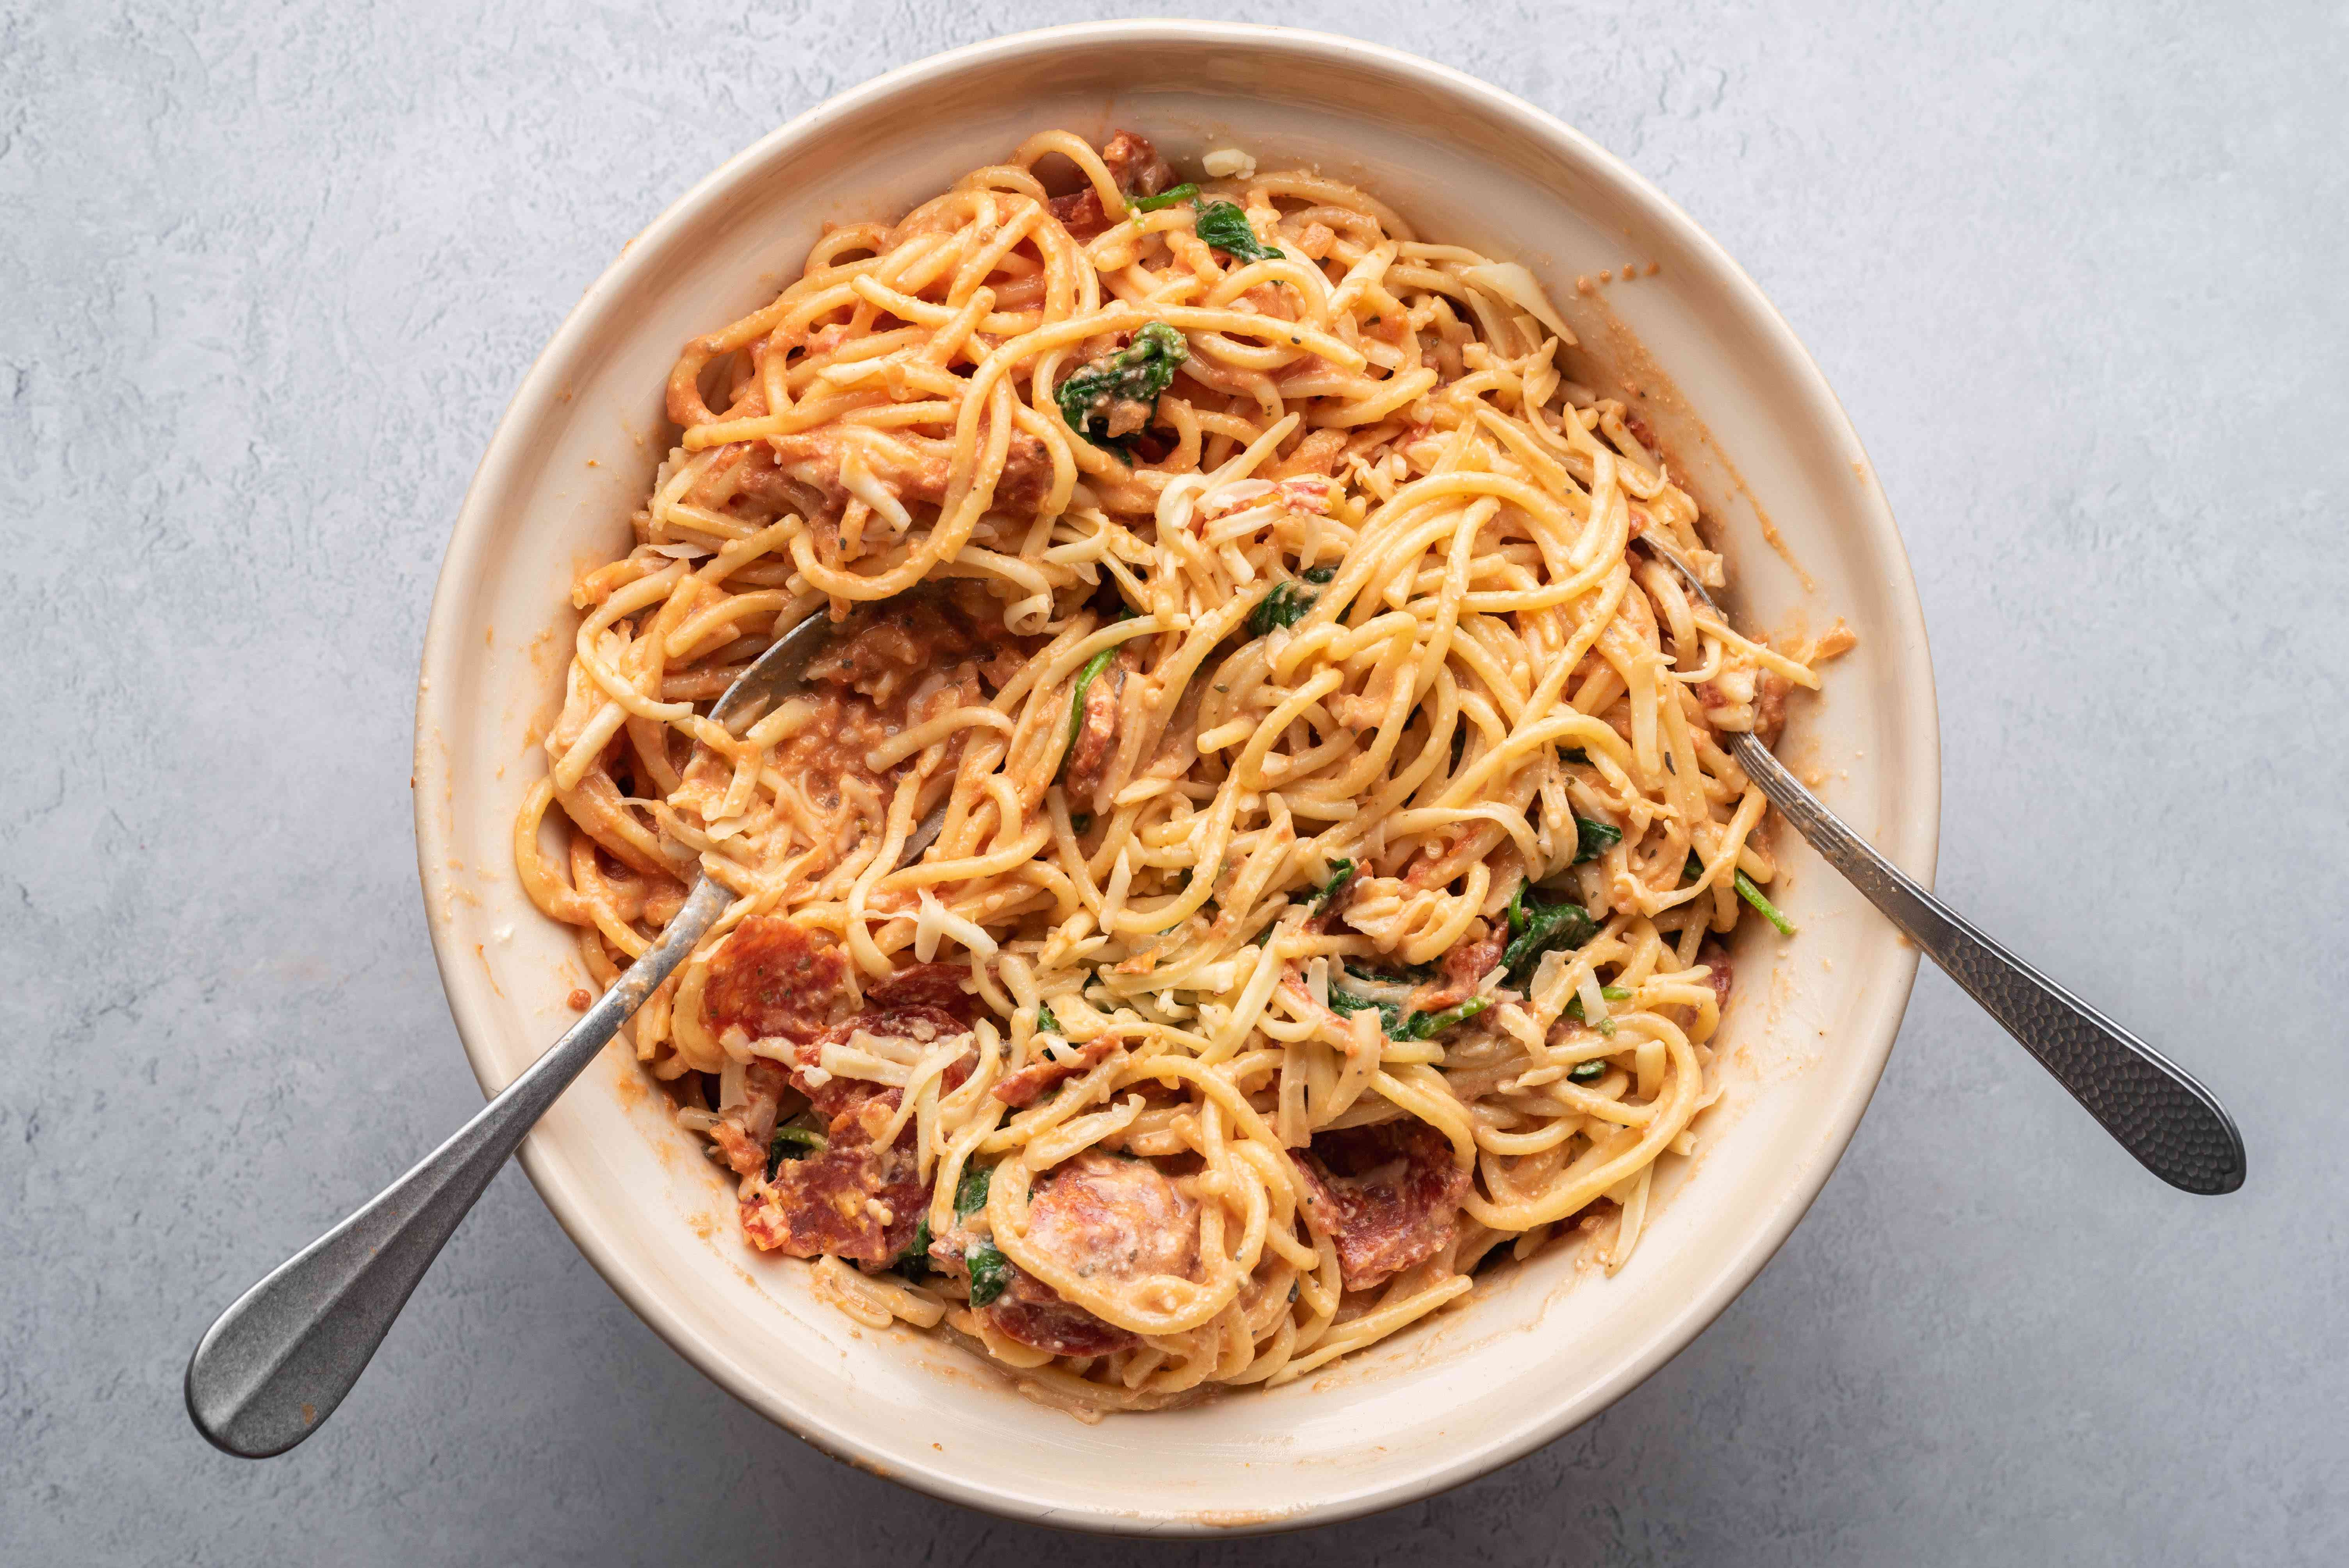 Toss the pasta with the egg mixture. Then, toss in the spinach, pepperoni, and mozzarella cheese